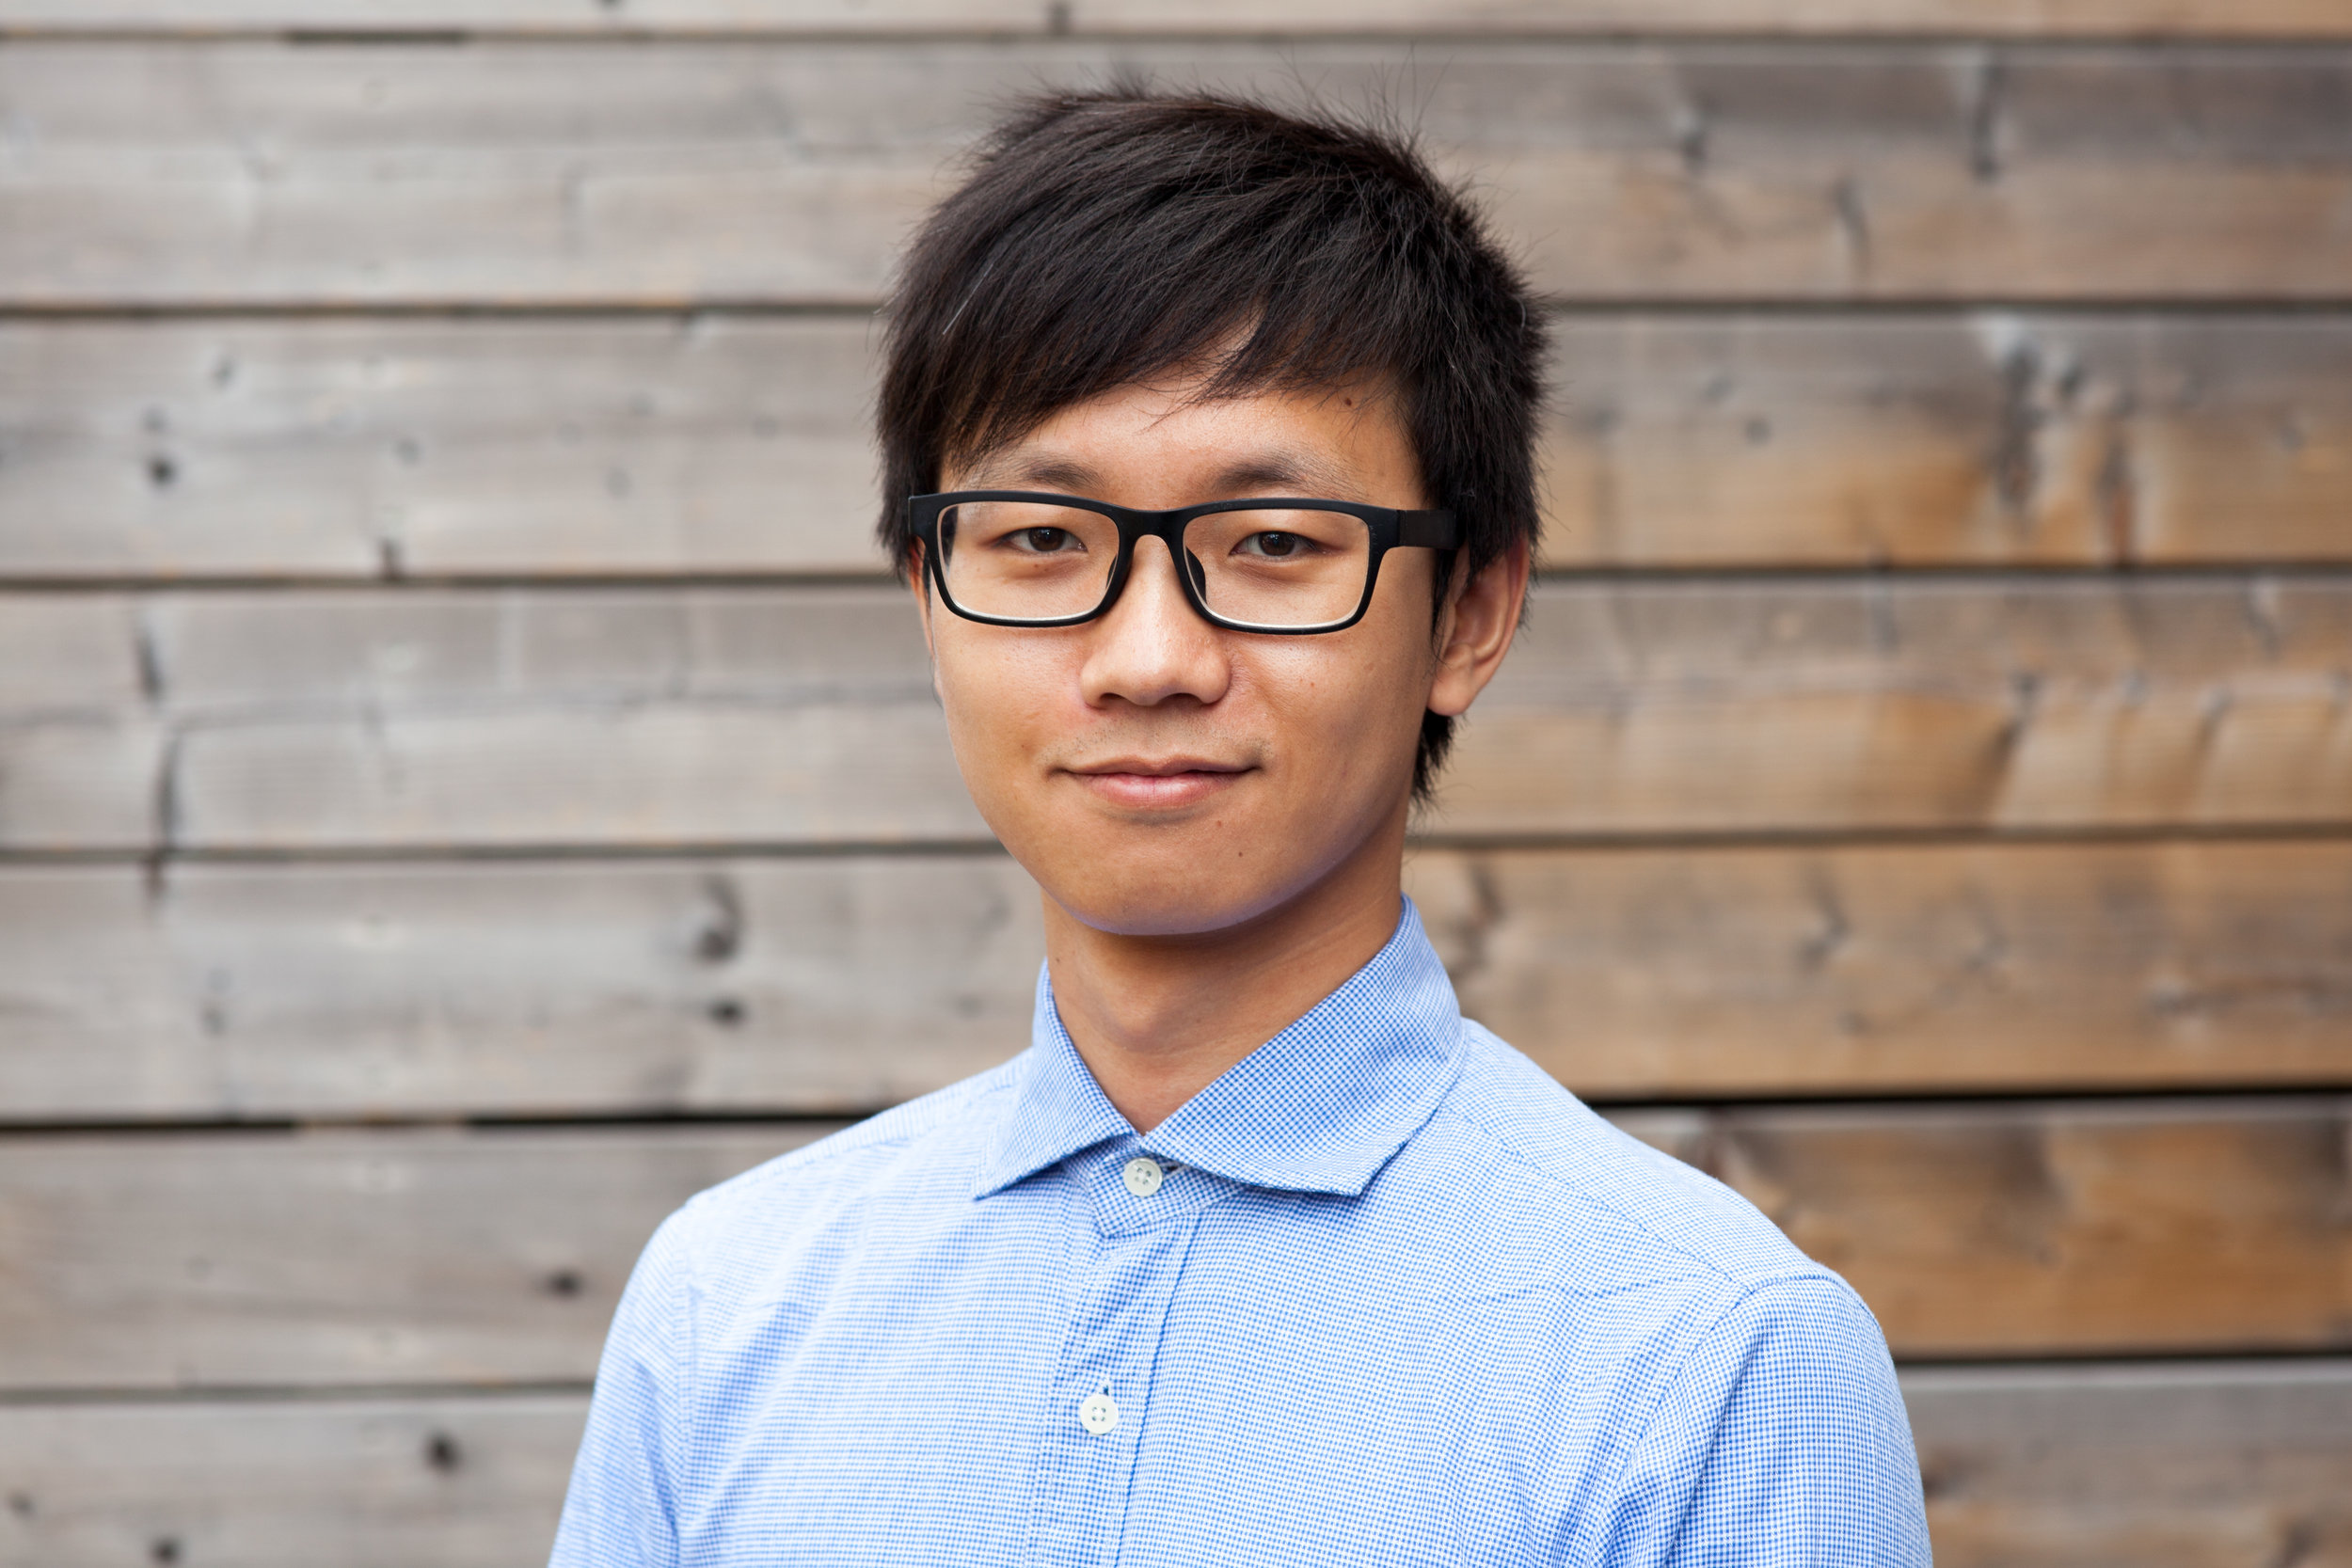 Yishan Guo - Yishan is a data scientist working full-time on GEMINI at St Michael's Hospital. He completed his masters in biostatistics from Dalla Lana School of Public Health at the University of Toronto and his bachelors in marine biology from Xiamen University.